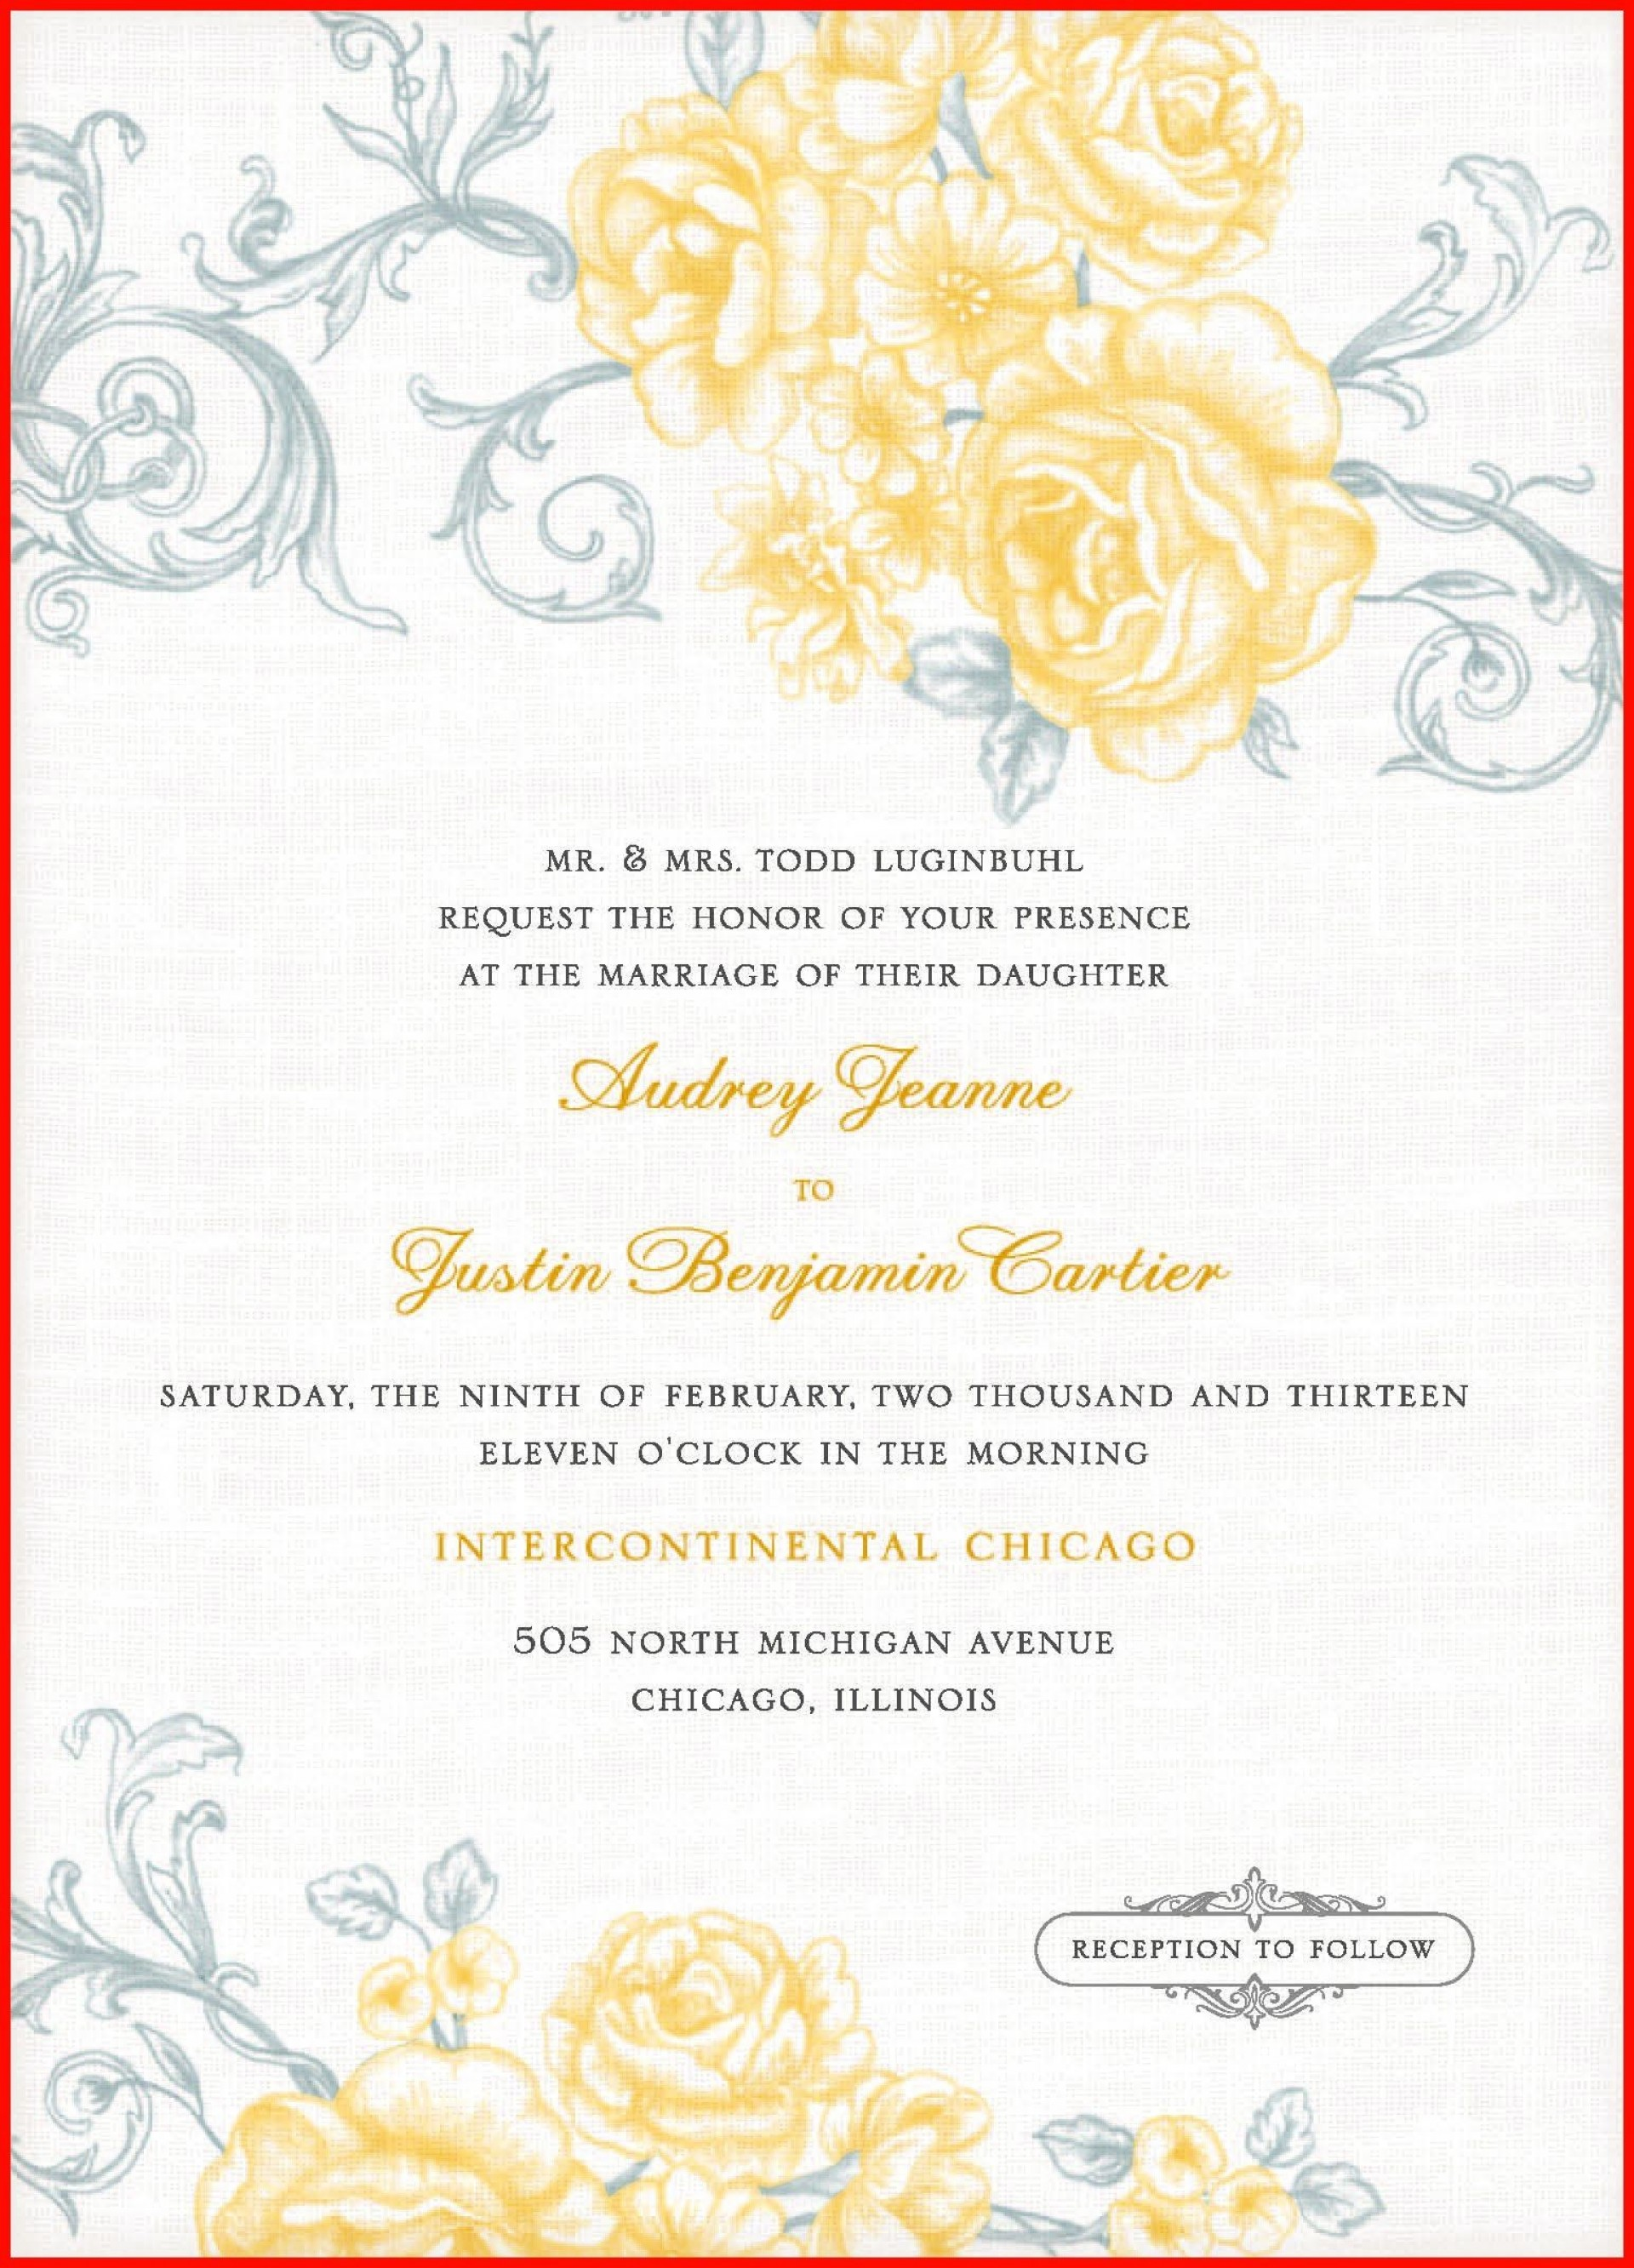 002 Incredible Free Invitation Template Word Design  Wedding For Tamil Christma Party1920